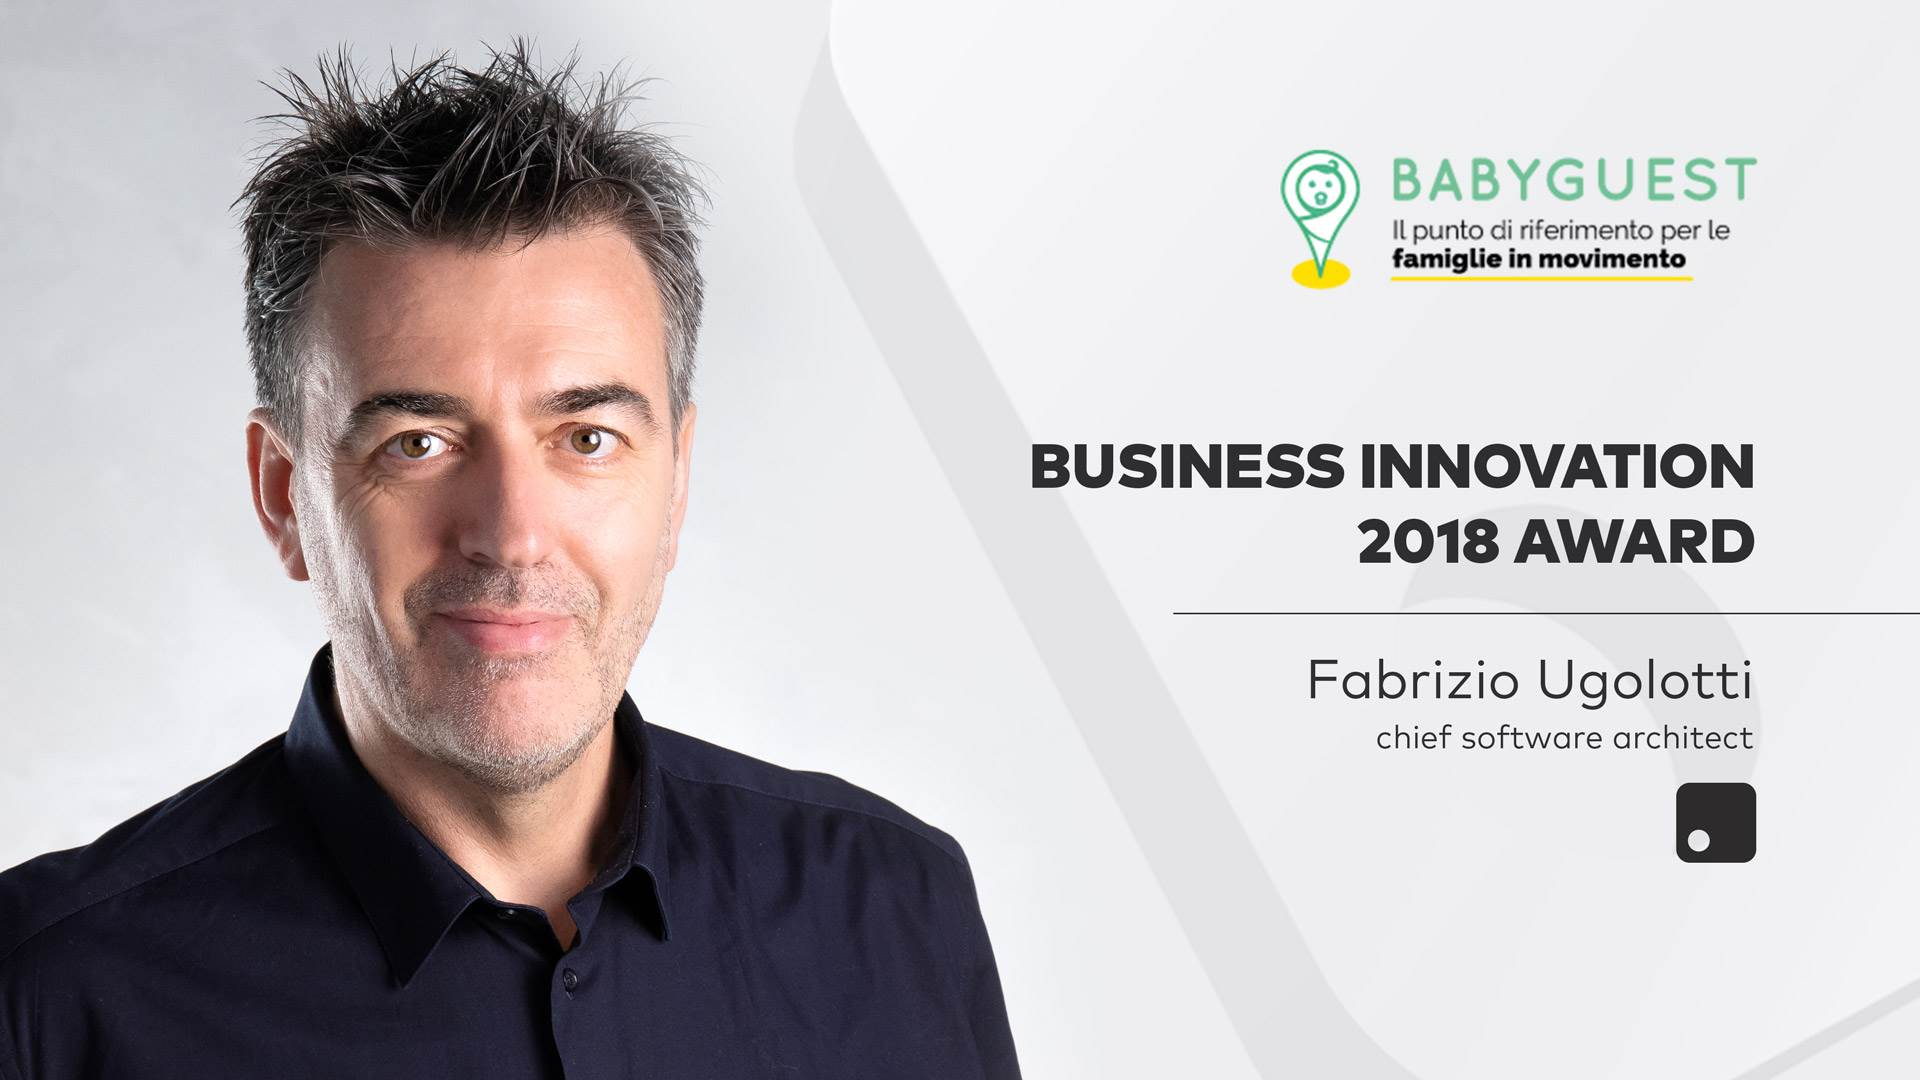 BabyGuest.com<br>Business Innovation 2018 Award